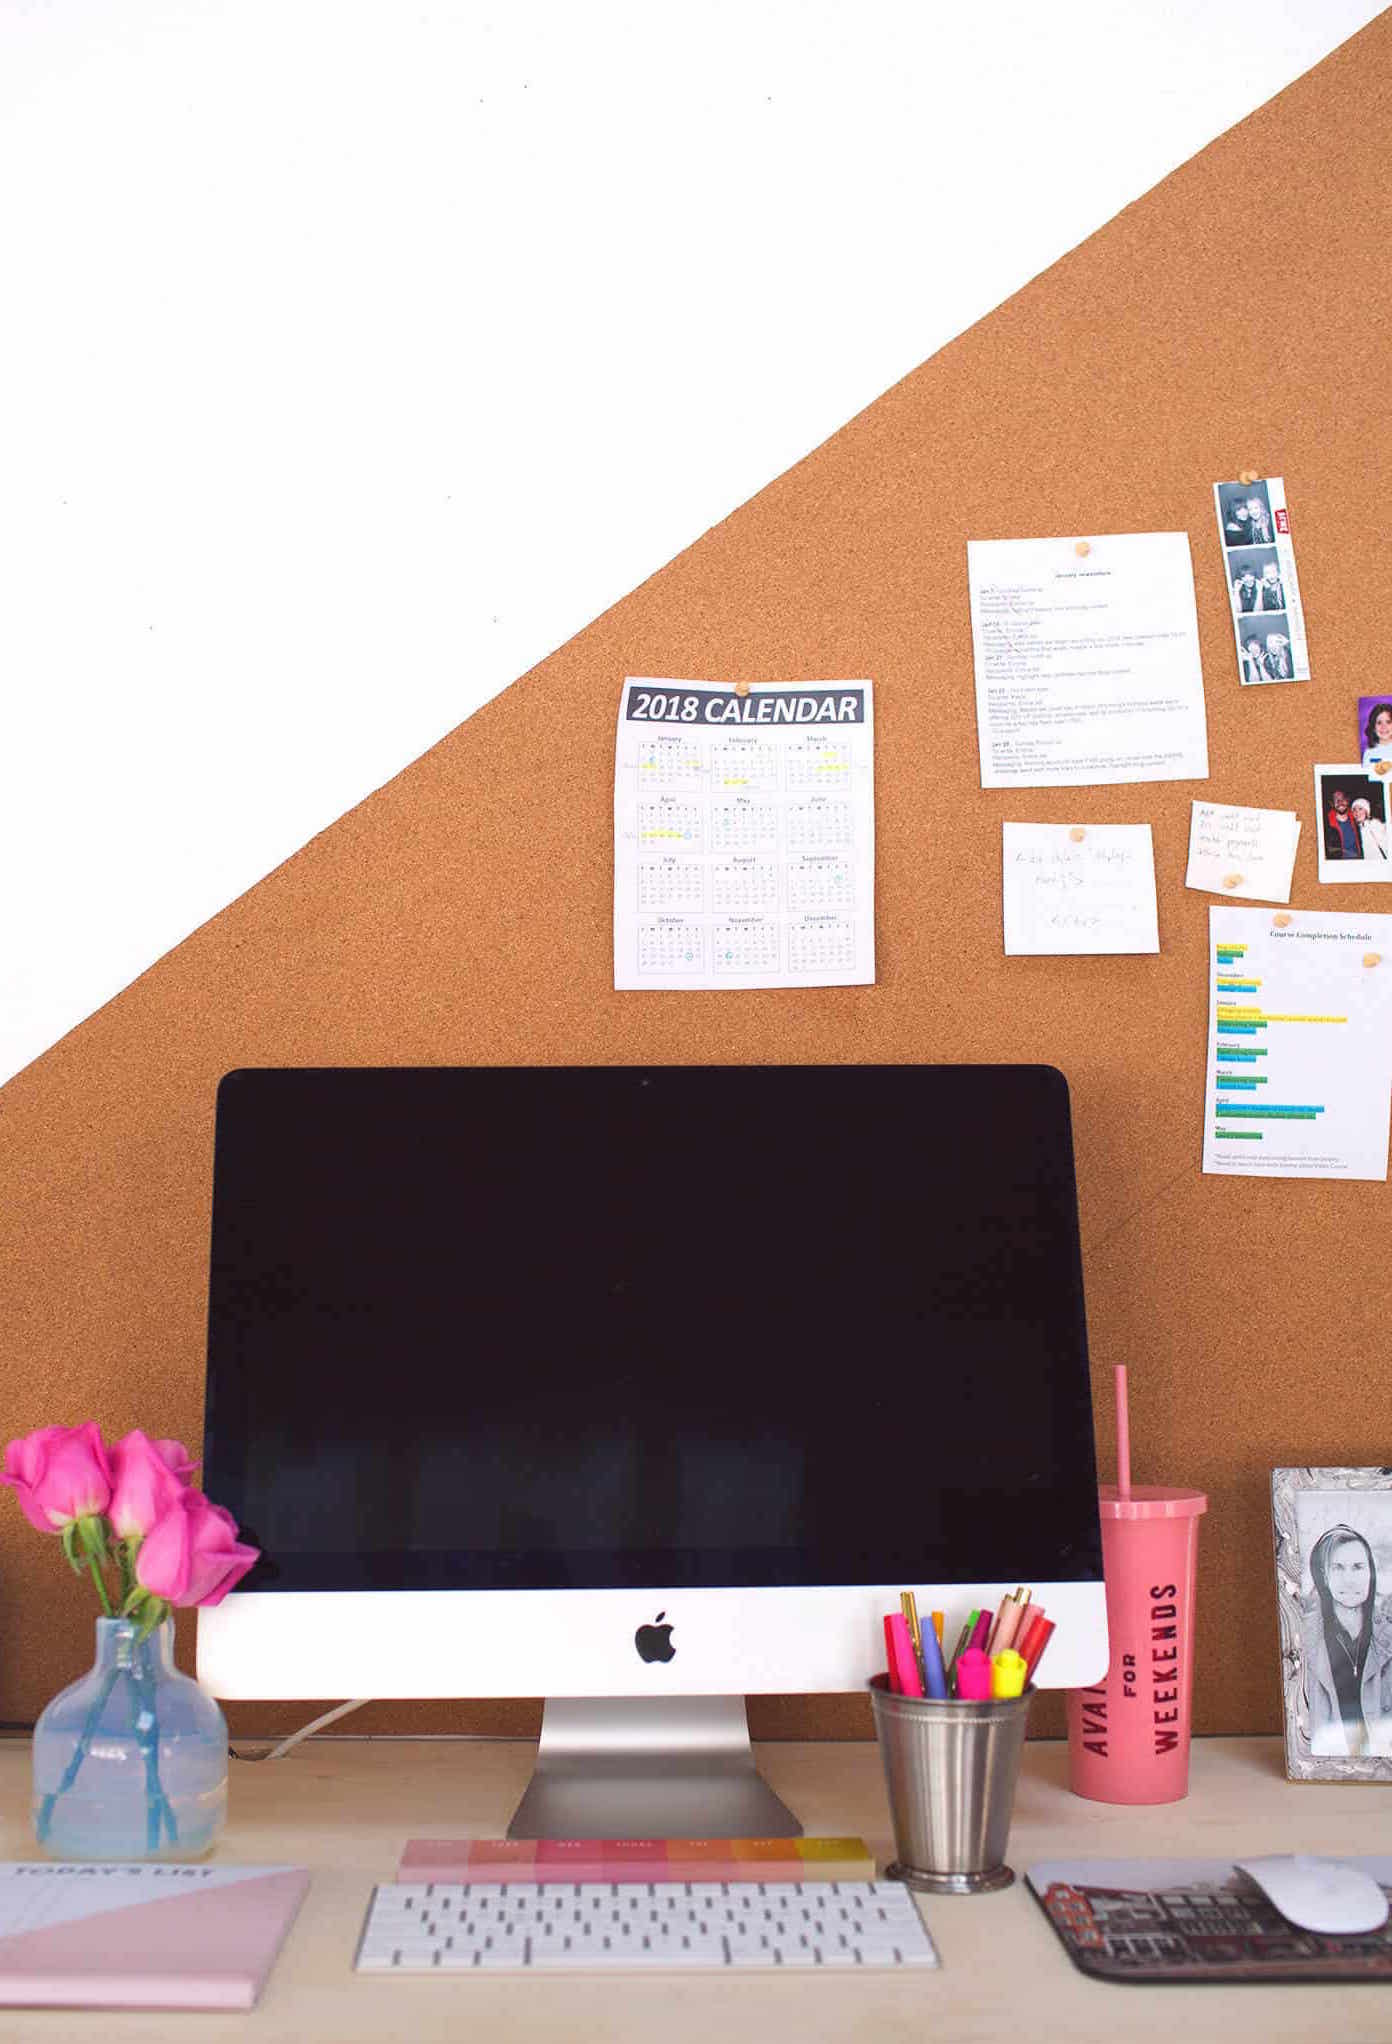 Cork decorates the wall of the home office and also helps organize day-to-day tasks